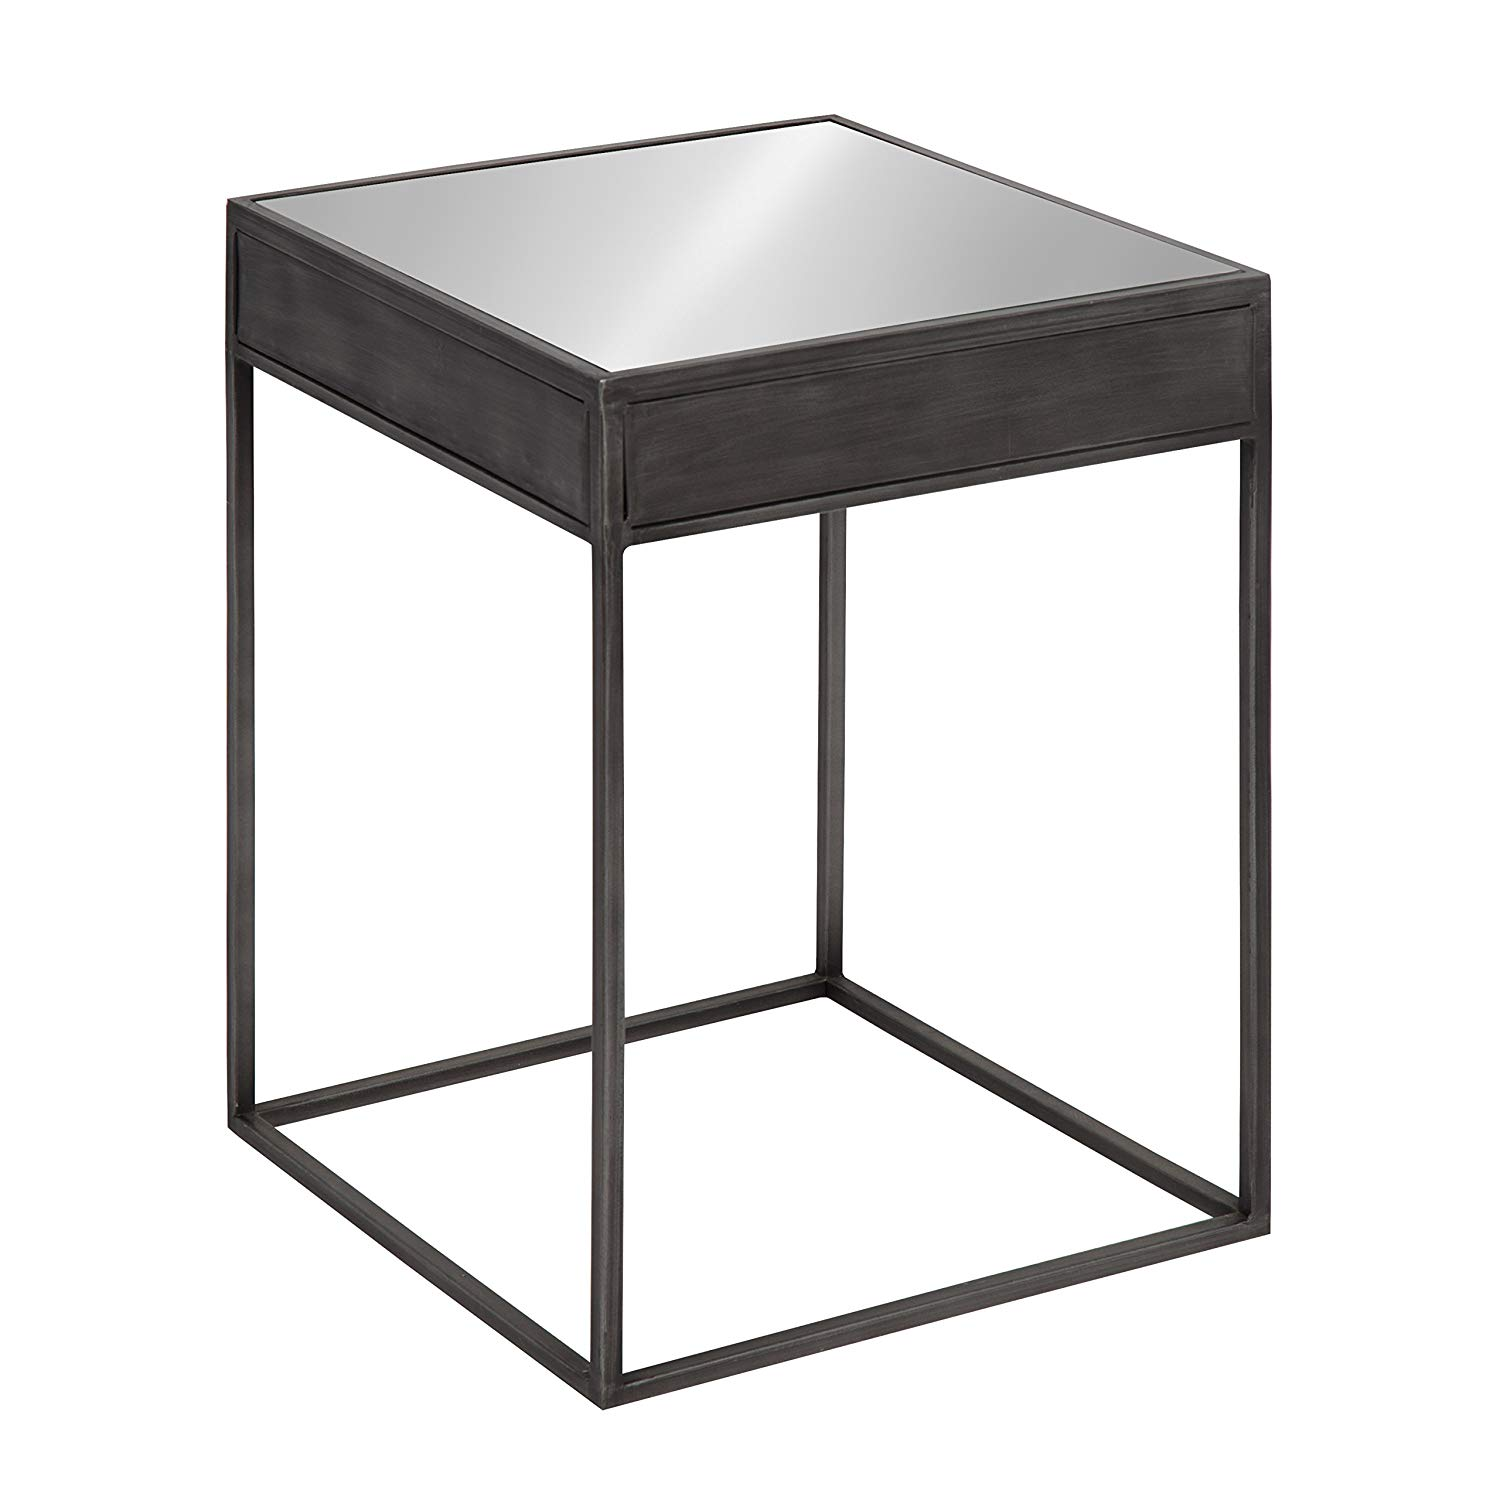 small metal accent table find black get quotations kate and laurel aleksand industrial modern square mirror side end metallic laminate threshold tablecloths for large round tables